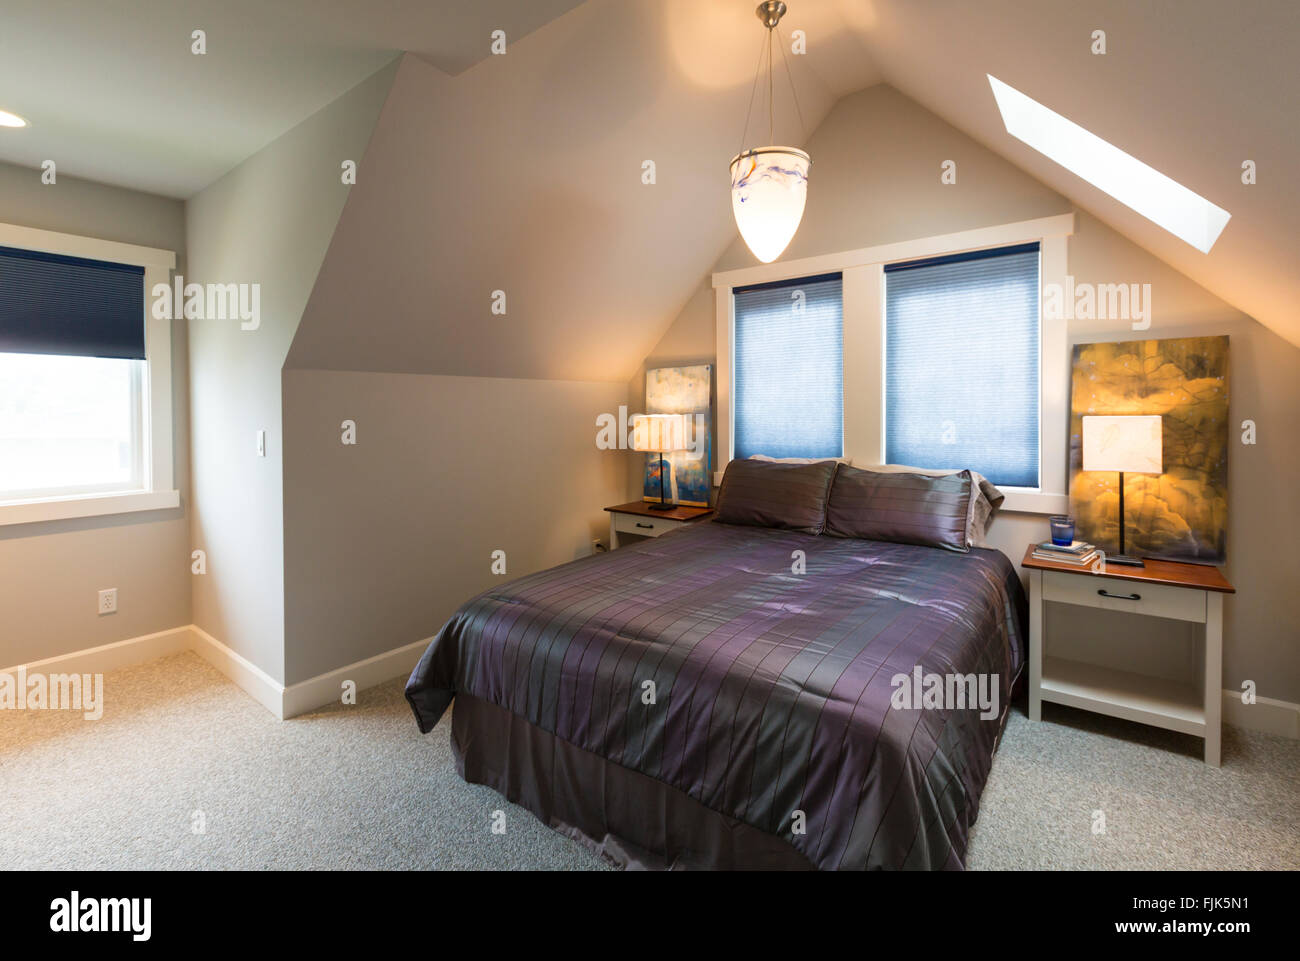 Bedroom With Bed, Bedside Tables, Vaulted Ceiling, Windows With Window  Coverings, Artwork And Accent Lighting In Upscale Home